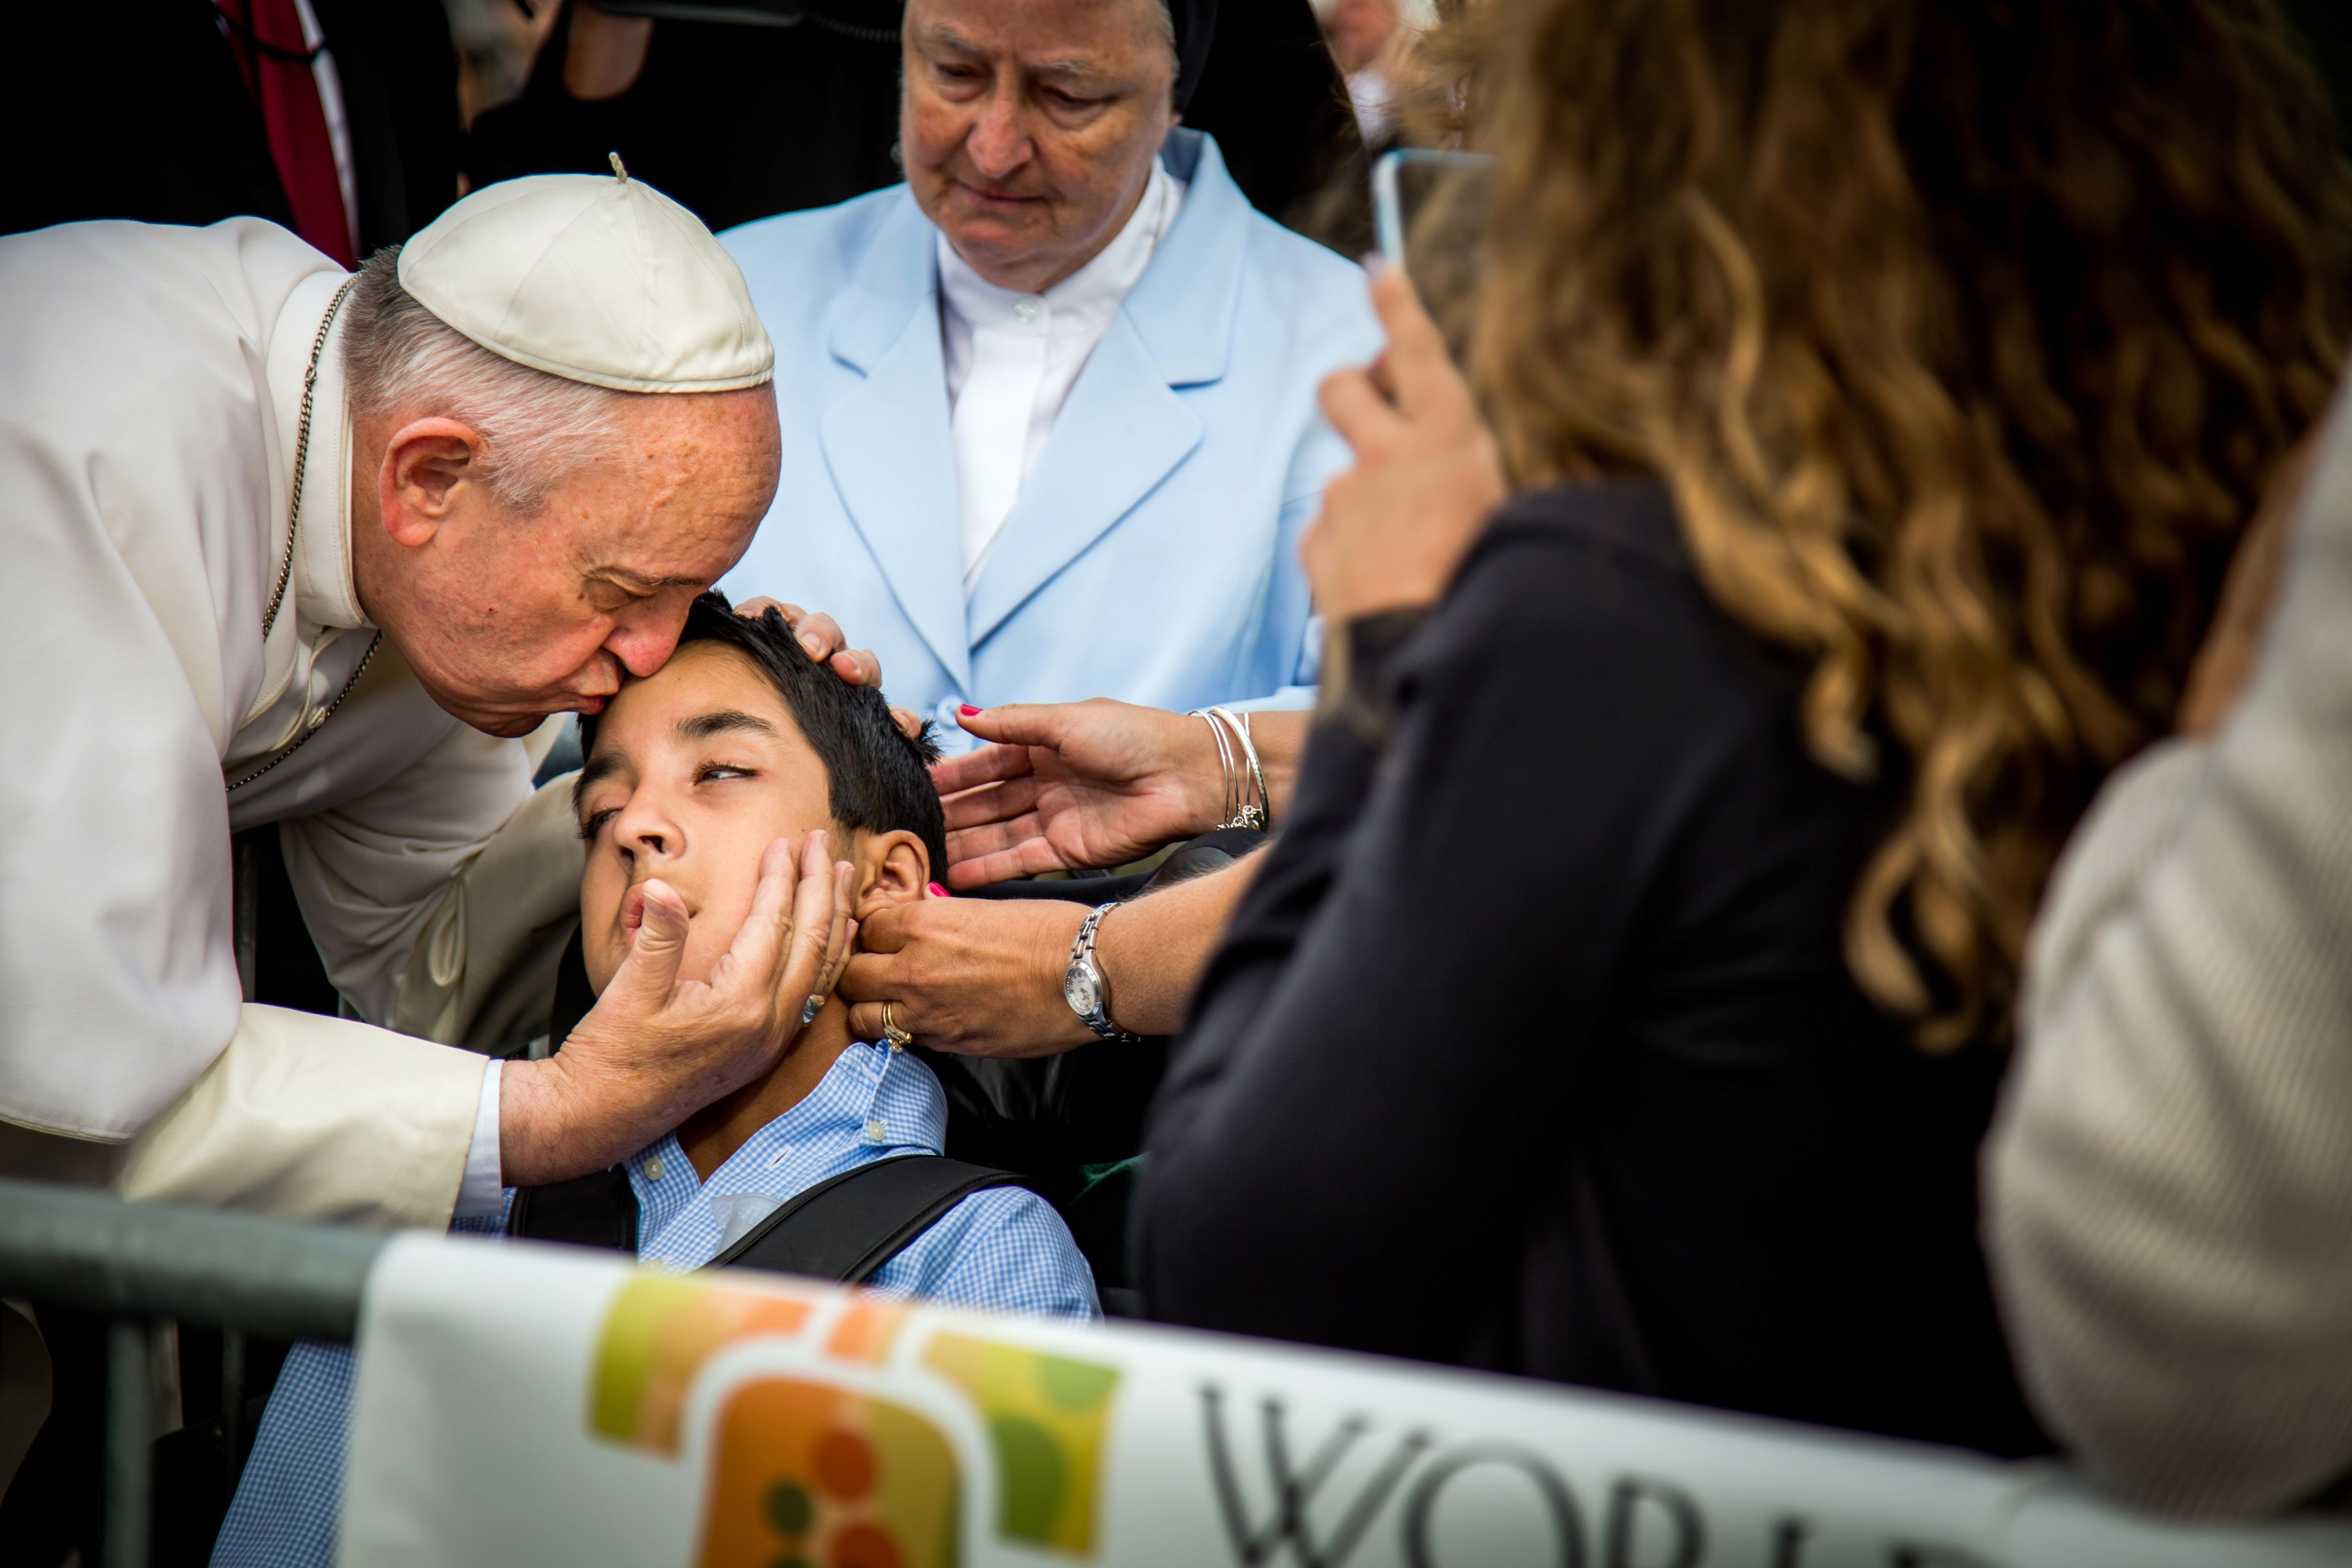 The World Saw Pope Francis Bless A Boy With Cerebral Palsy Here S